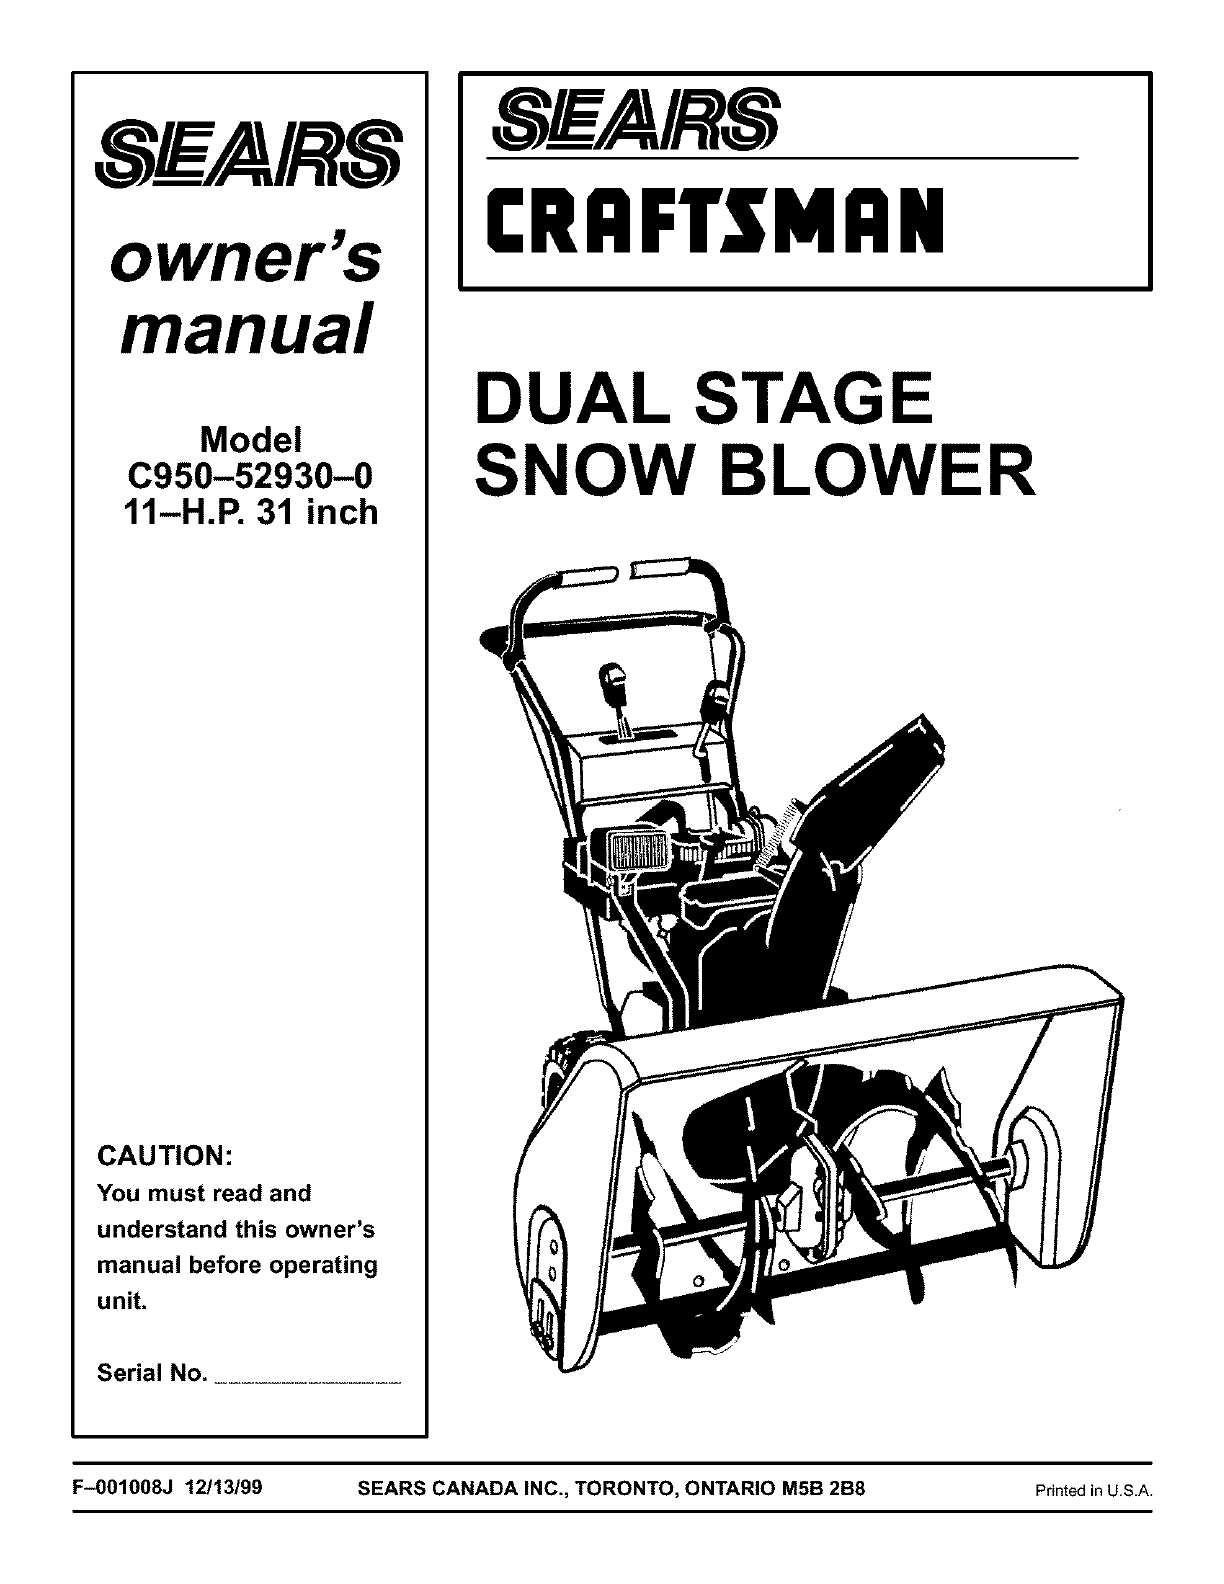 Old craftsman snowblower manual product user guide instruction craftsman snow blower c950 52930 0 user guide manualsonline com rh kitchen manualsonline com craftsman repair manual craftsman snow blower manual pdf 247 fandeluxe Images